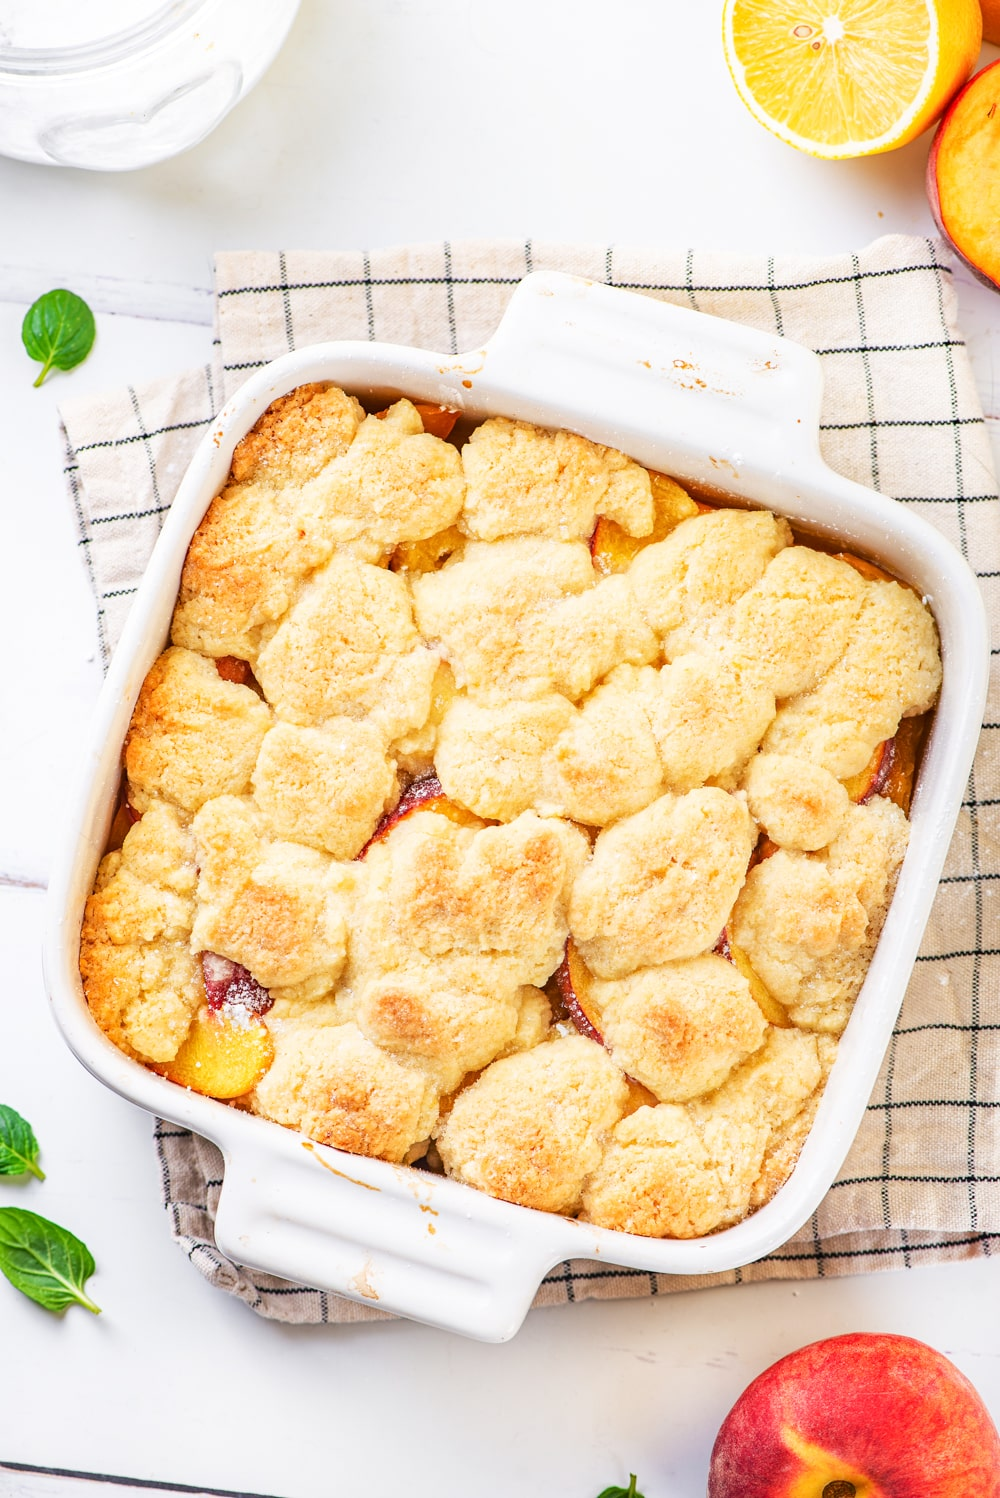 Vegan peach cobbler in a white baking dish on a white and blue plaid tablecloth. The tablecloth is on a white counter.